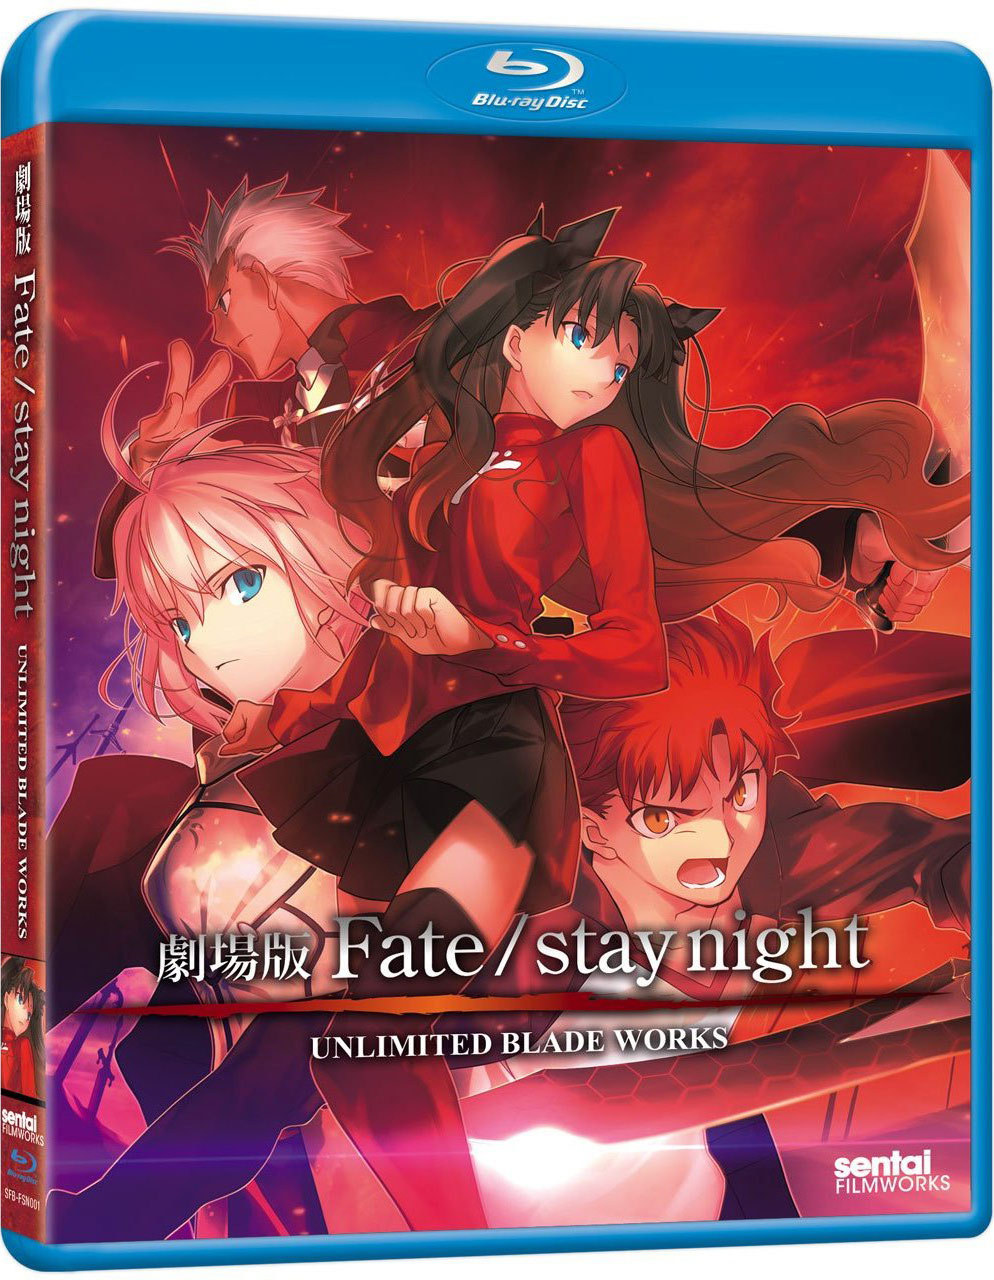 Fate/Unlimited Blade Works Blu-ray (Amazon)